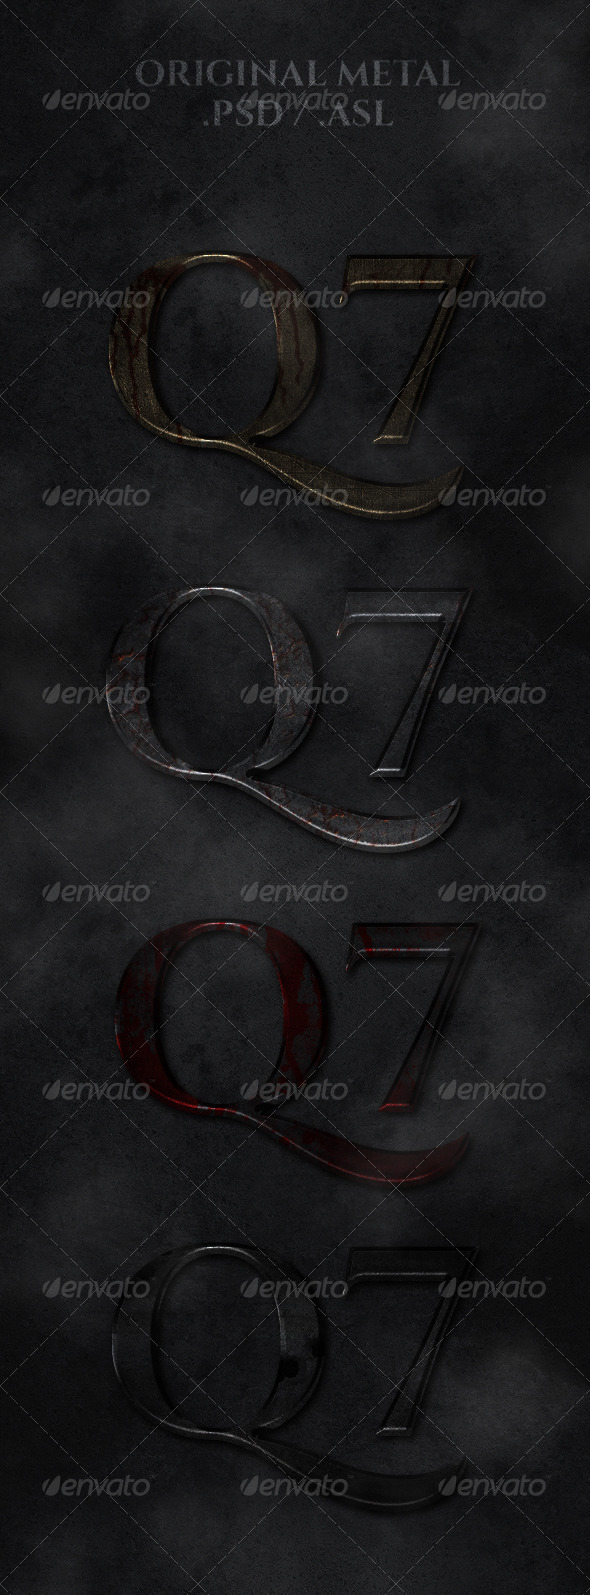 GraphicRiver Original Metal Styles 7225179